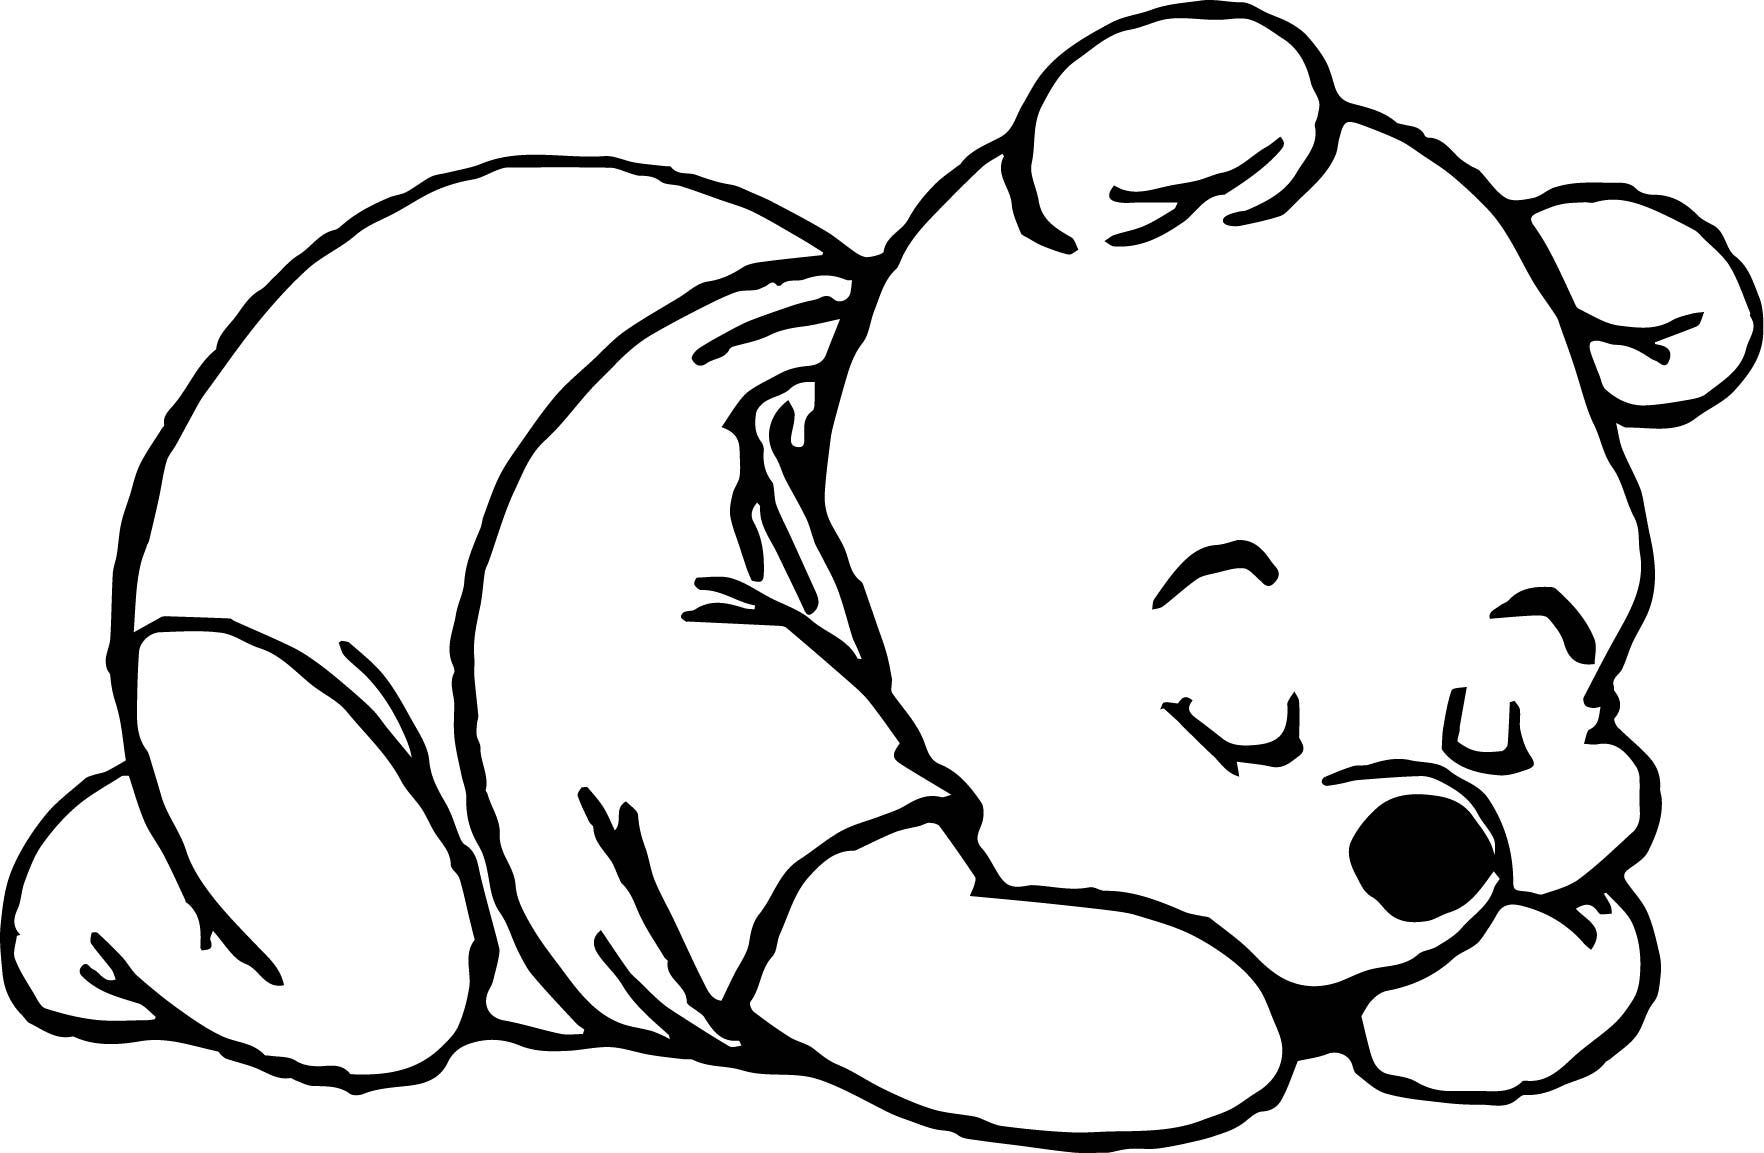 Cool Sleep Baby Pooh Coloring Page Stitch Coloring Pages Bear Coloring Pages Baby Coloring Pages